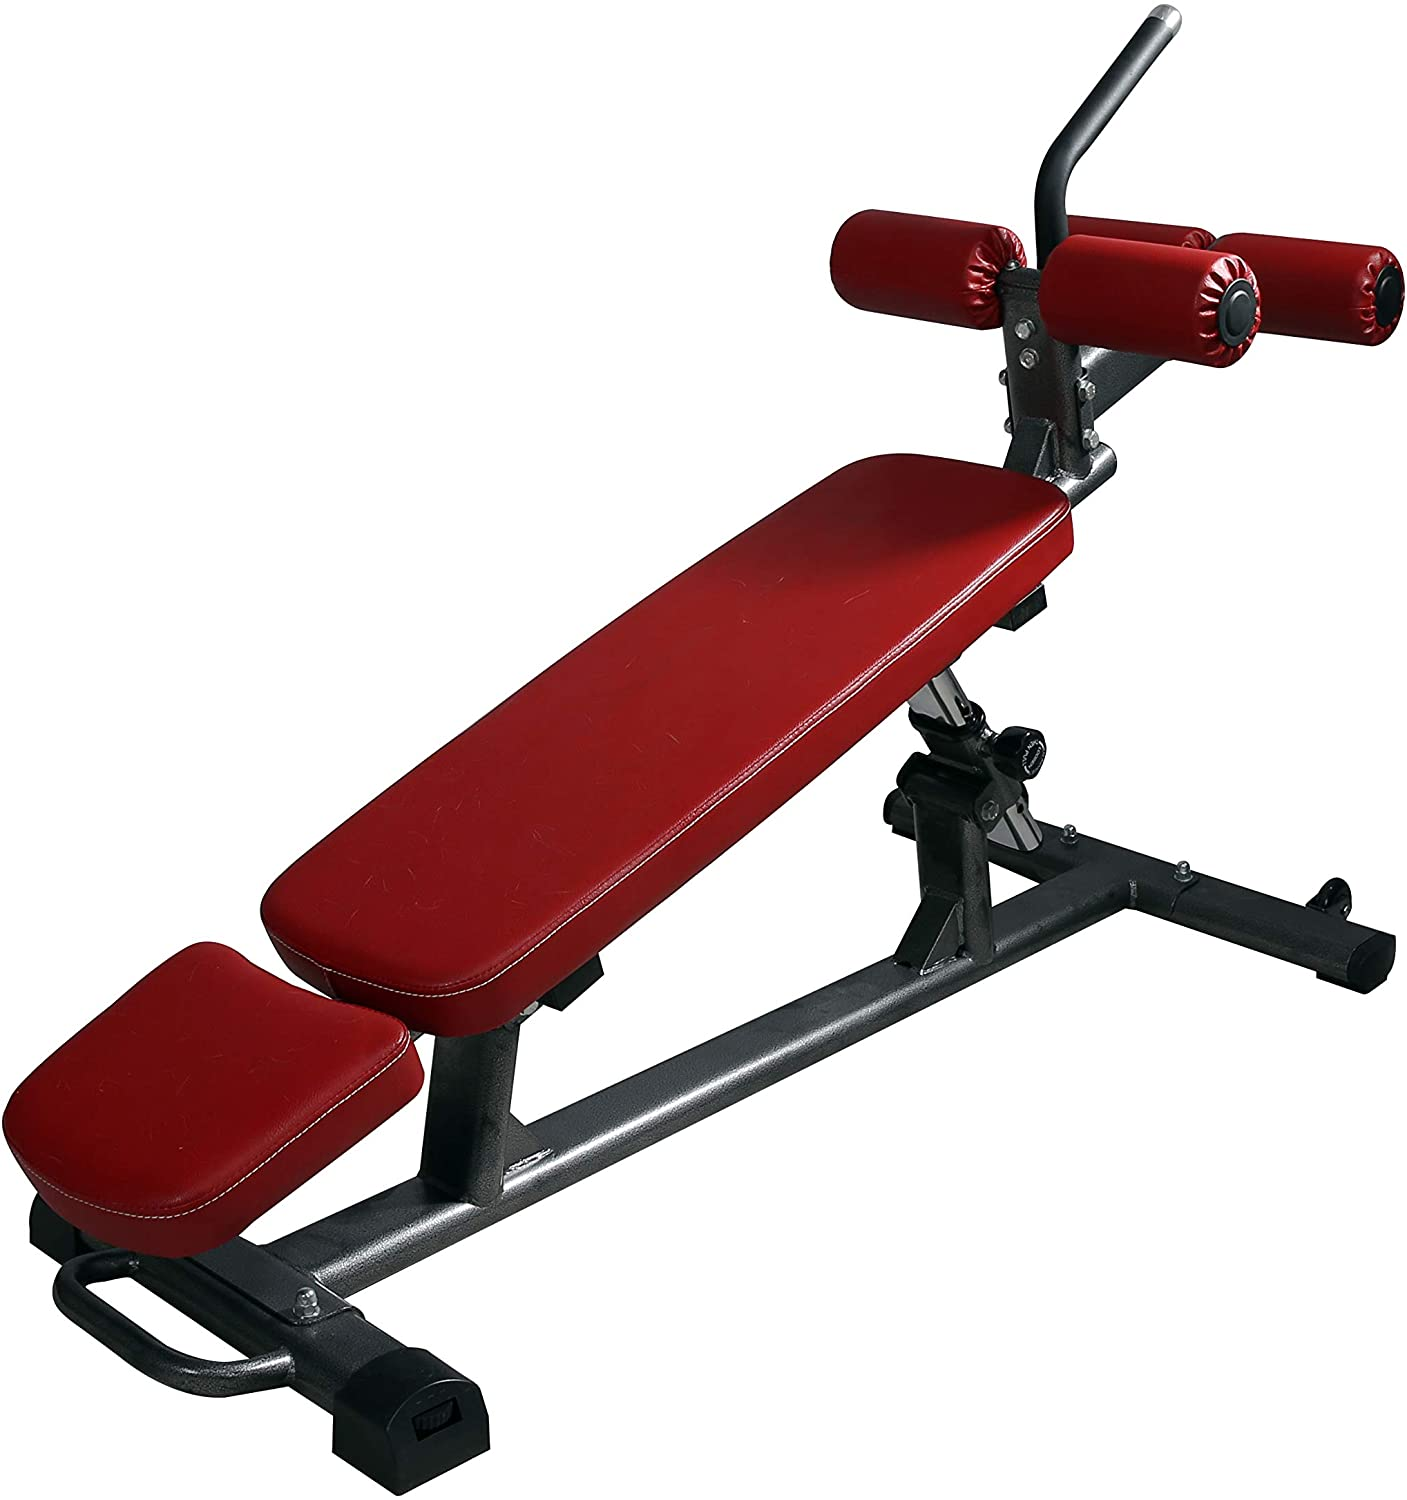 Finer Form Semi-Commercial Sit Up Bench Elite with Reverse Crunch Handle for Ab Exercises and 4 Adjustable Height Settings [Newly Improved]